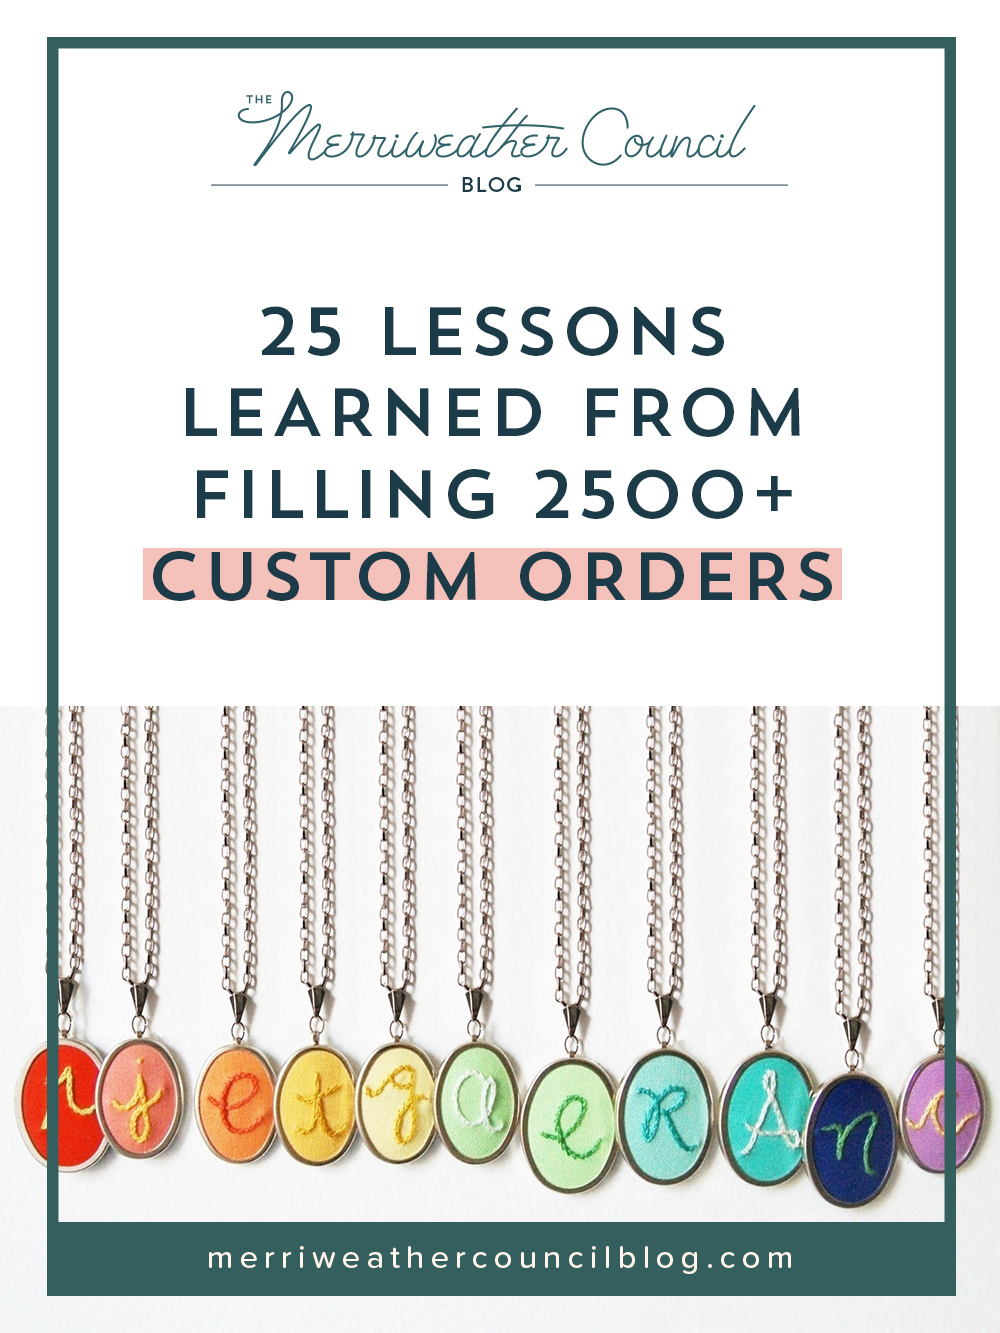 25 Lessons Learned from Filling 2500+ Custom Orders | the merriweather council blog